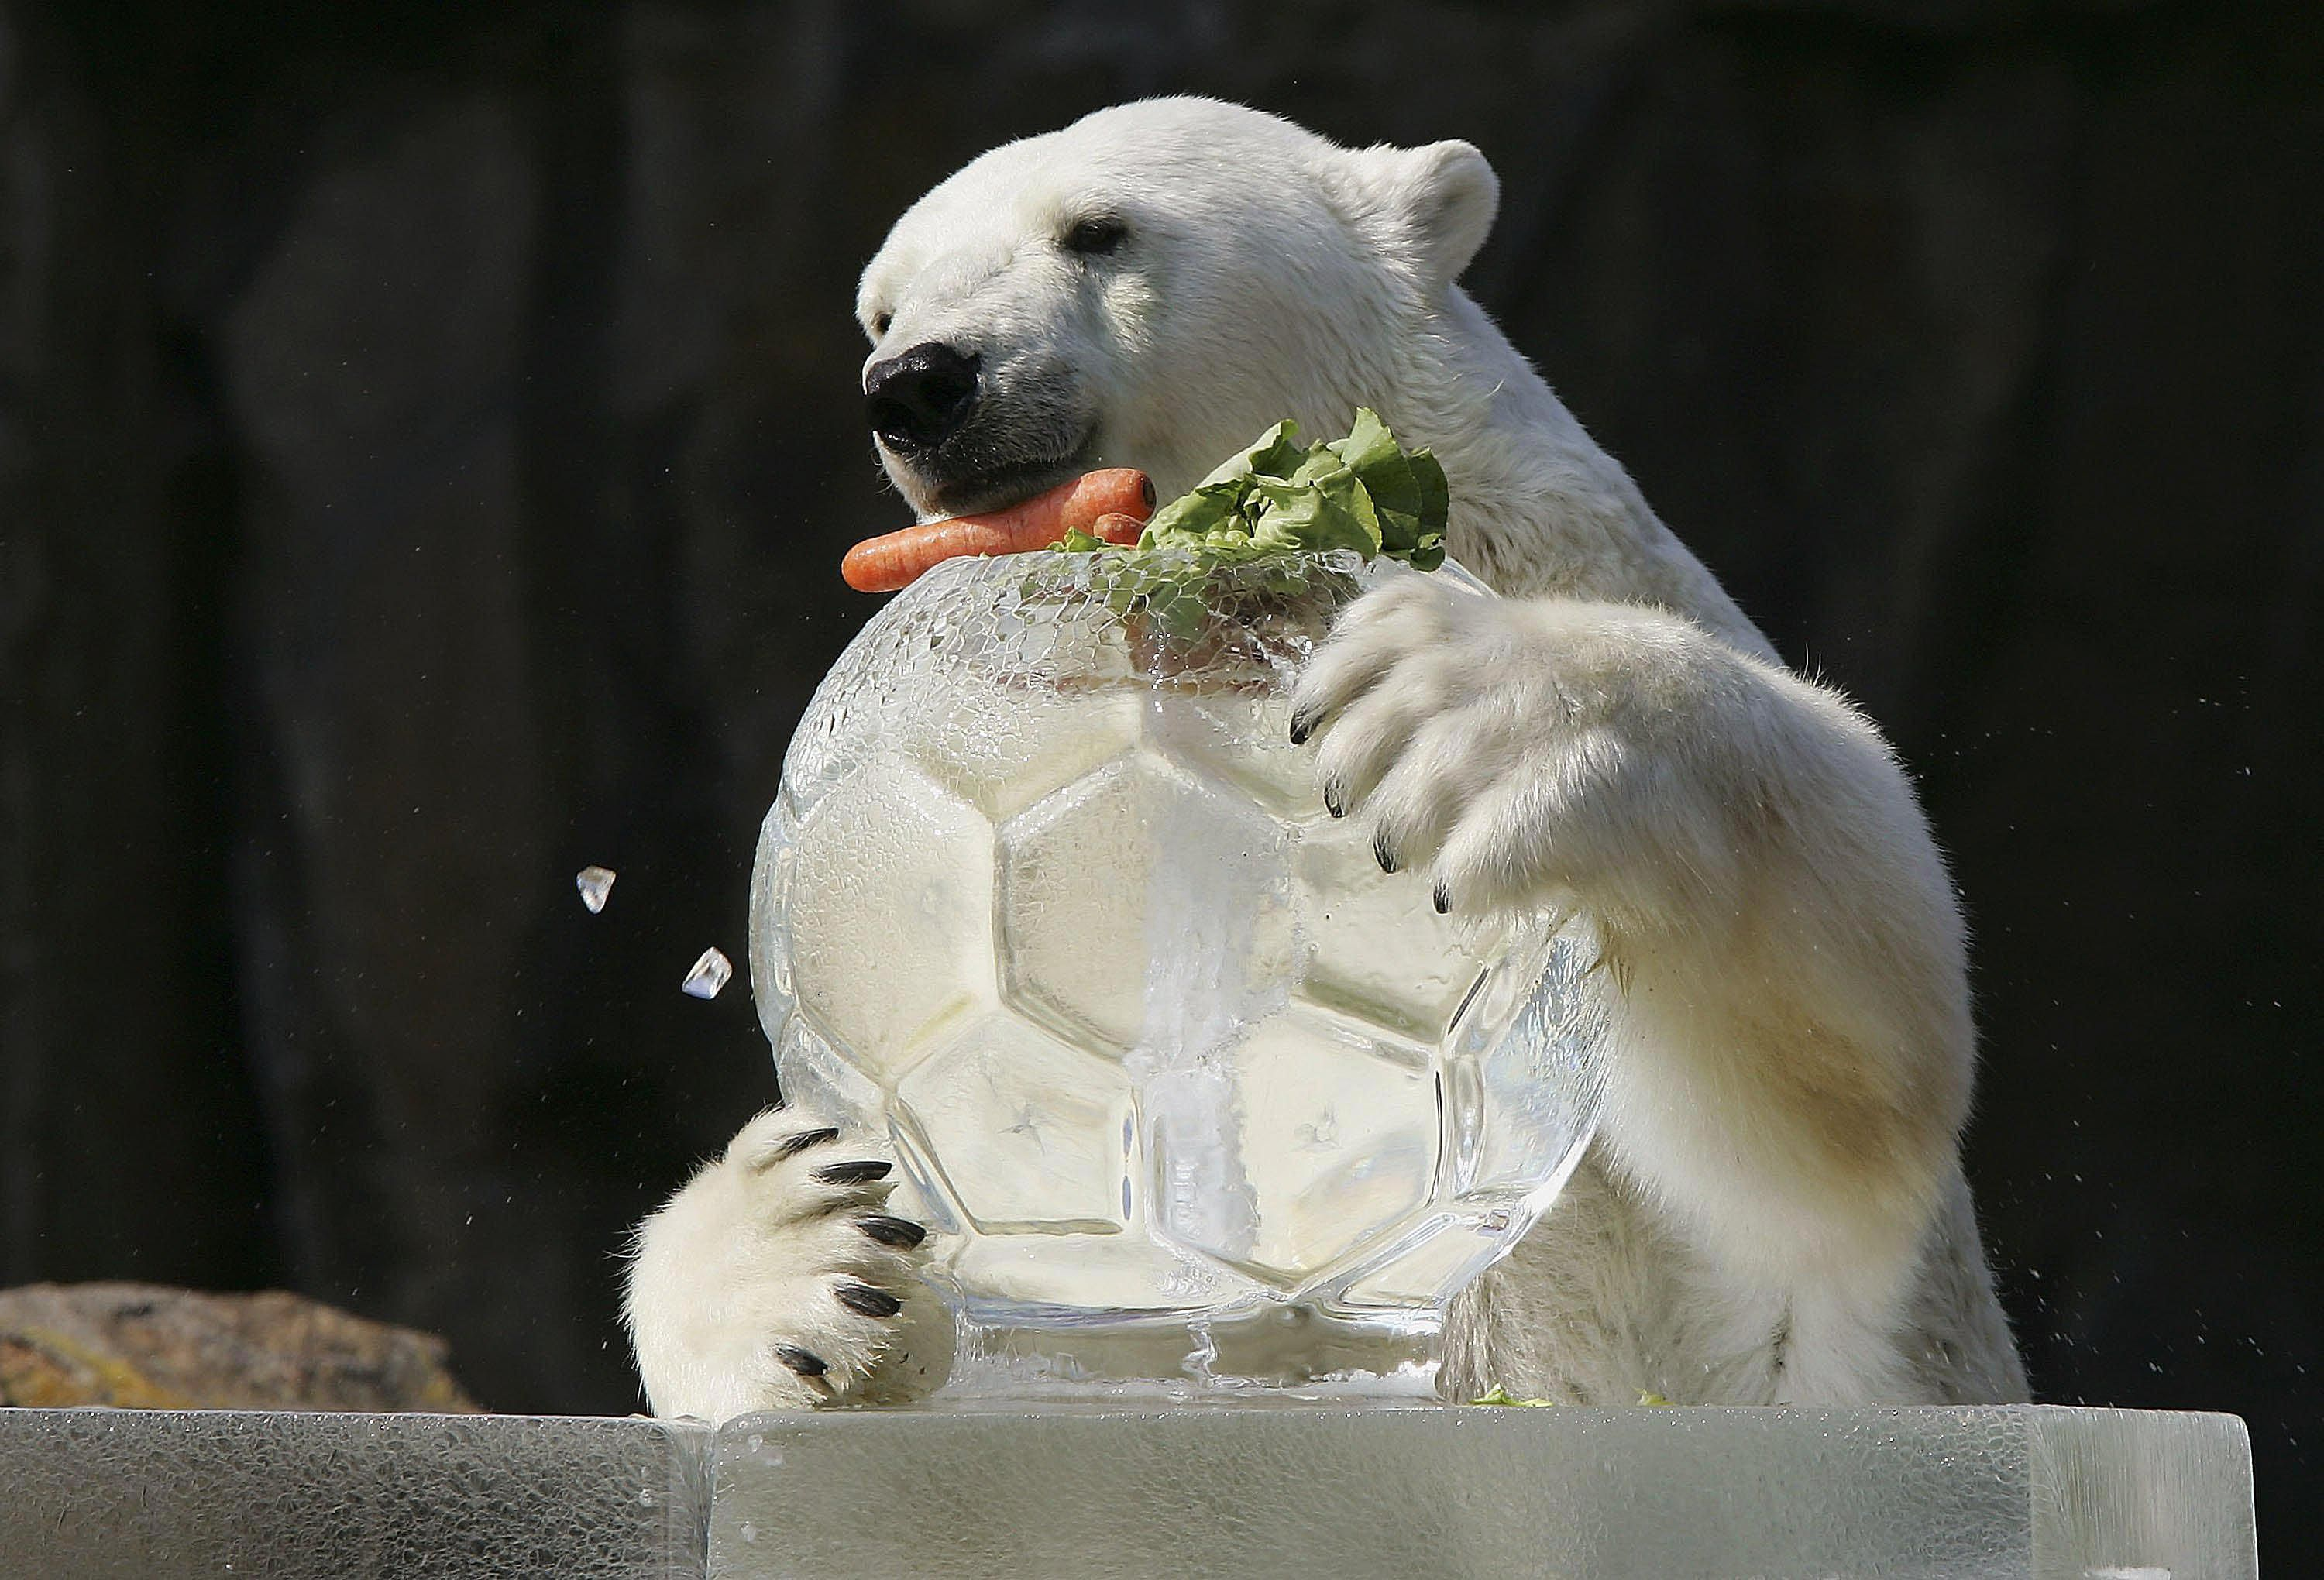 The National Zoo Diet